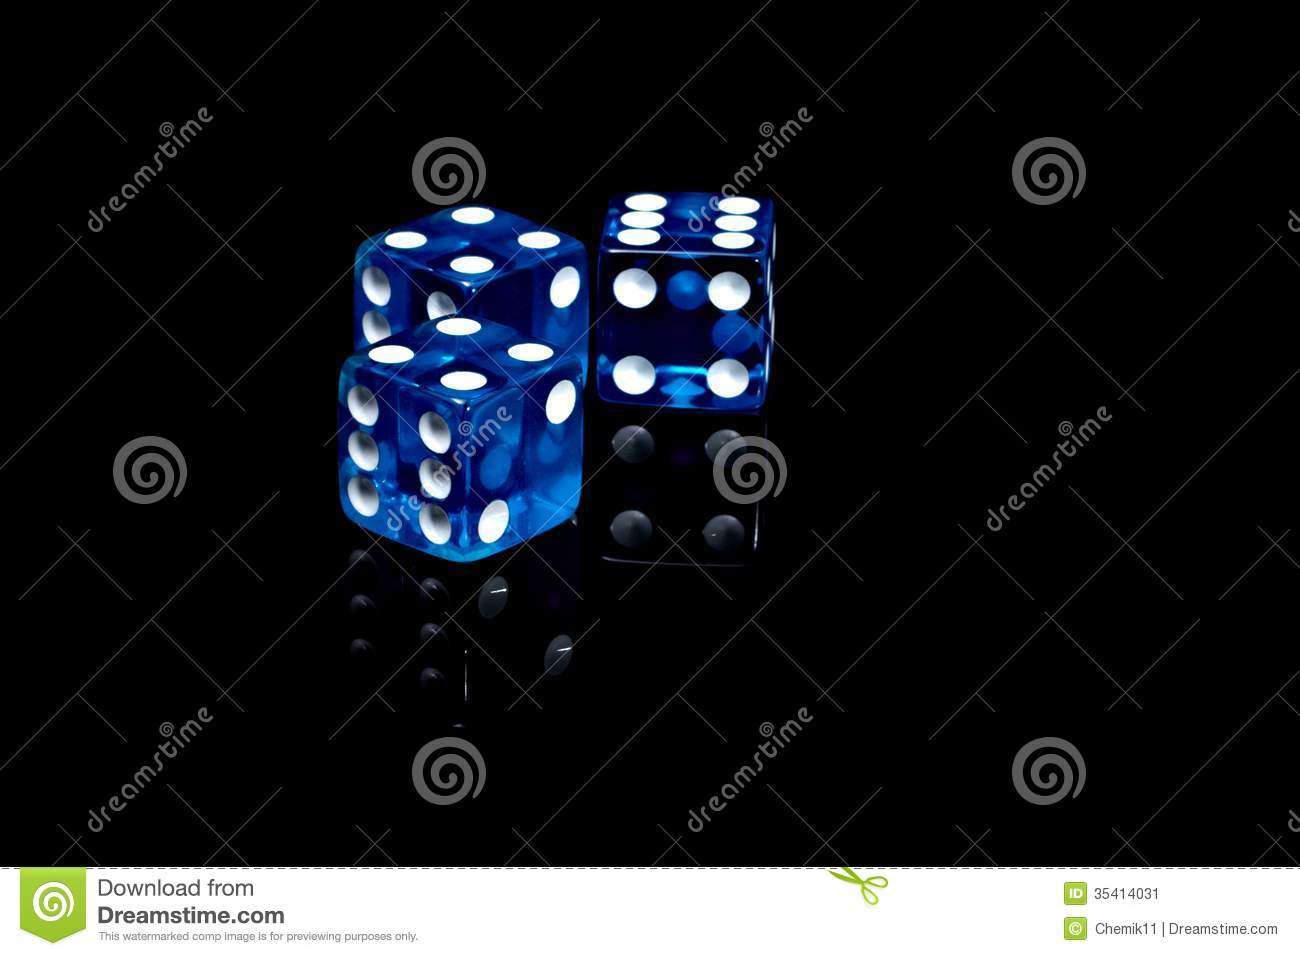 3 dice casino complaints about at&t service